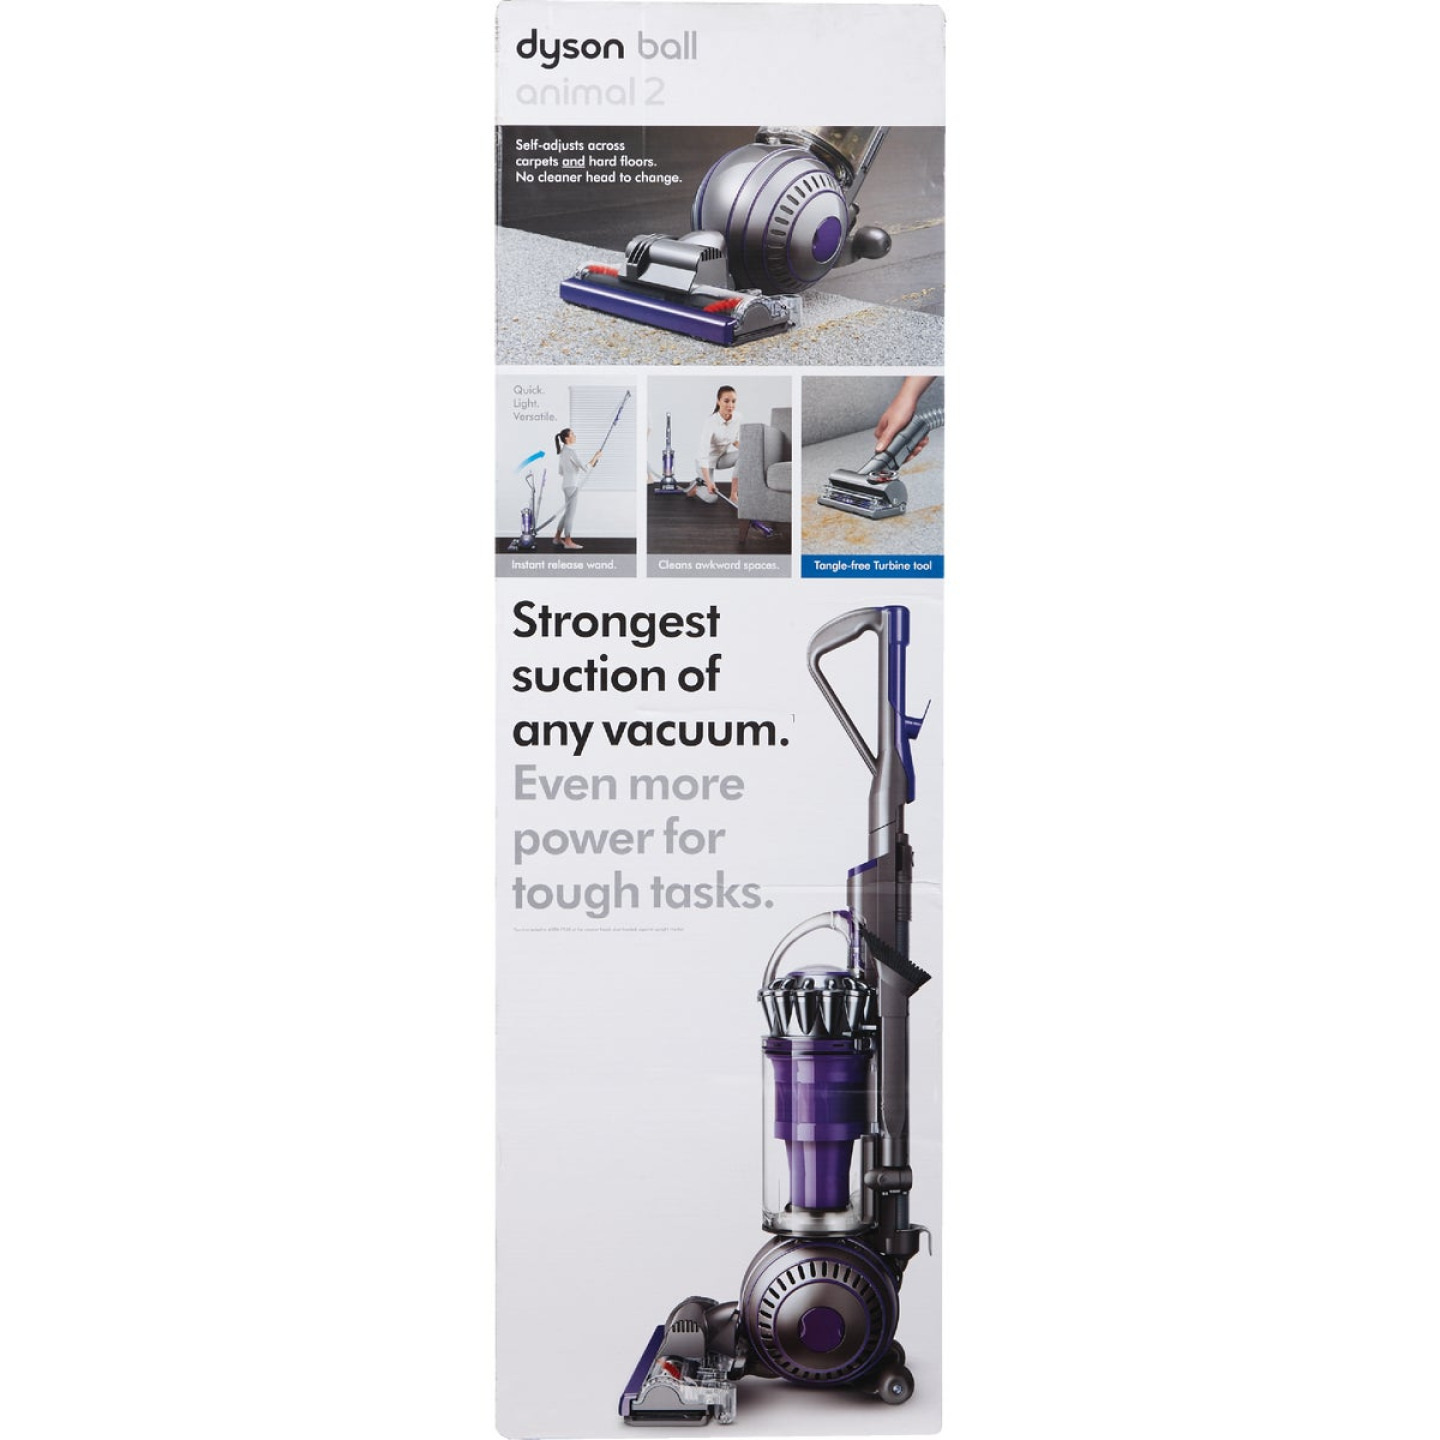 Dyson Ball Animal 2 Bagless Upright Vacuum Cleaner Image 2